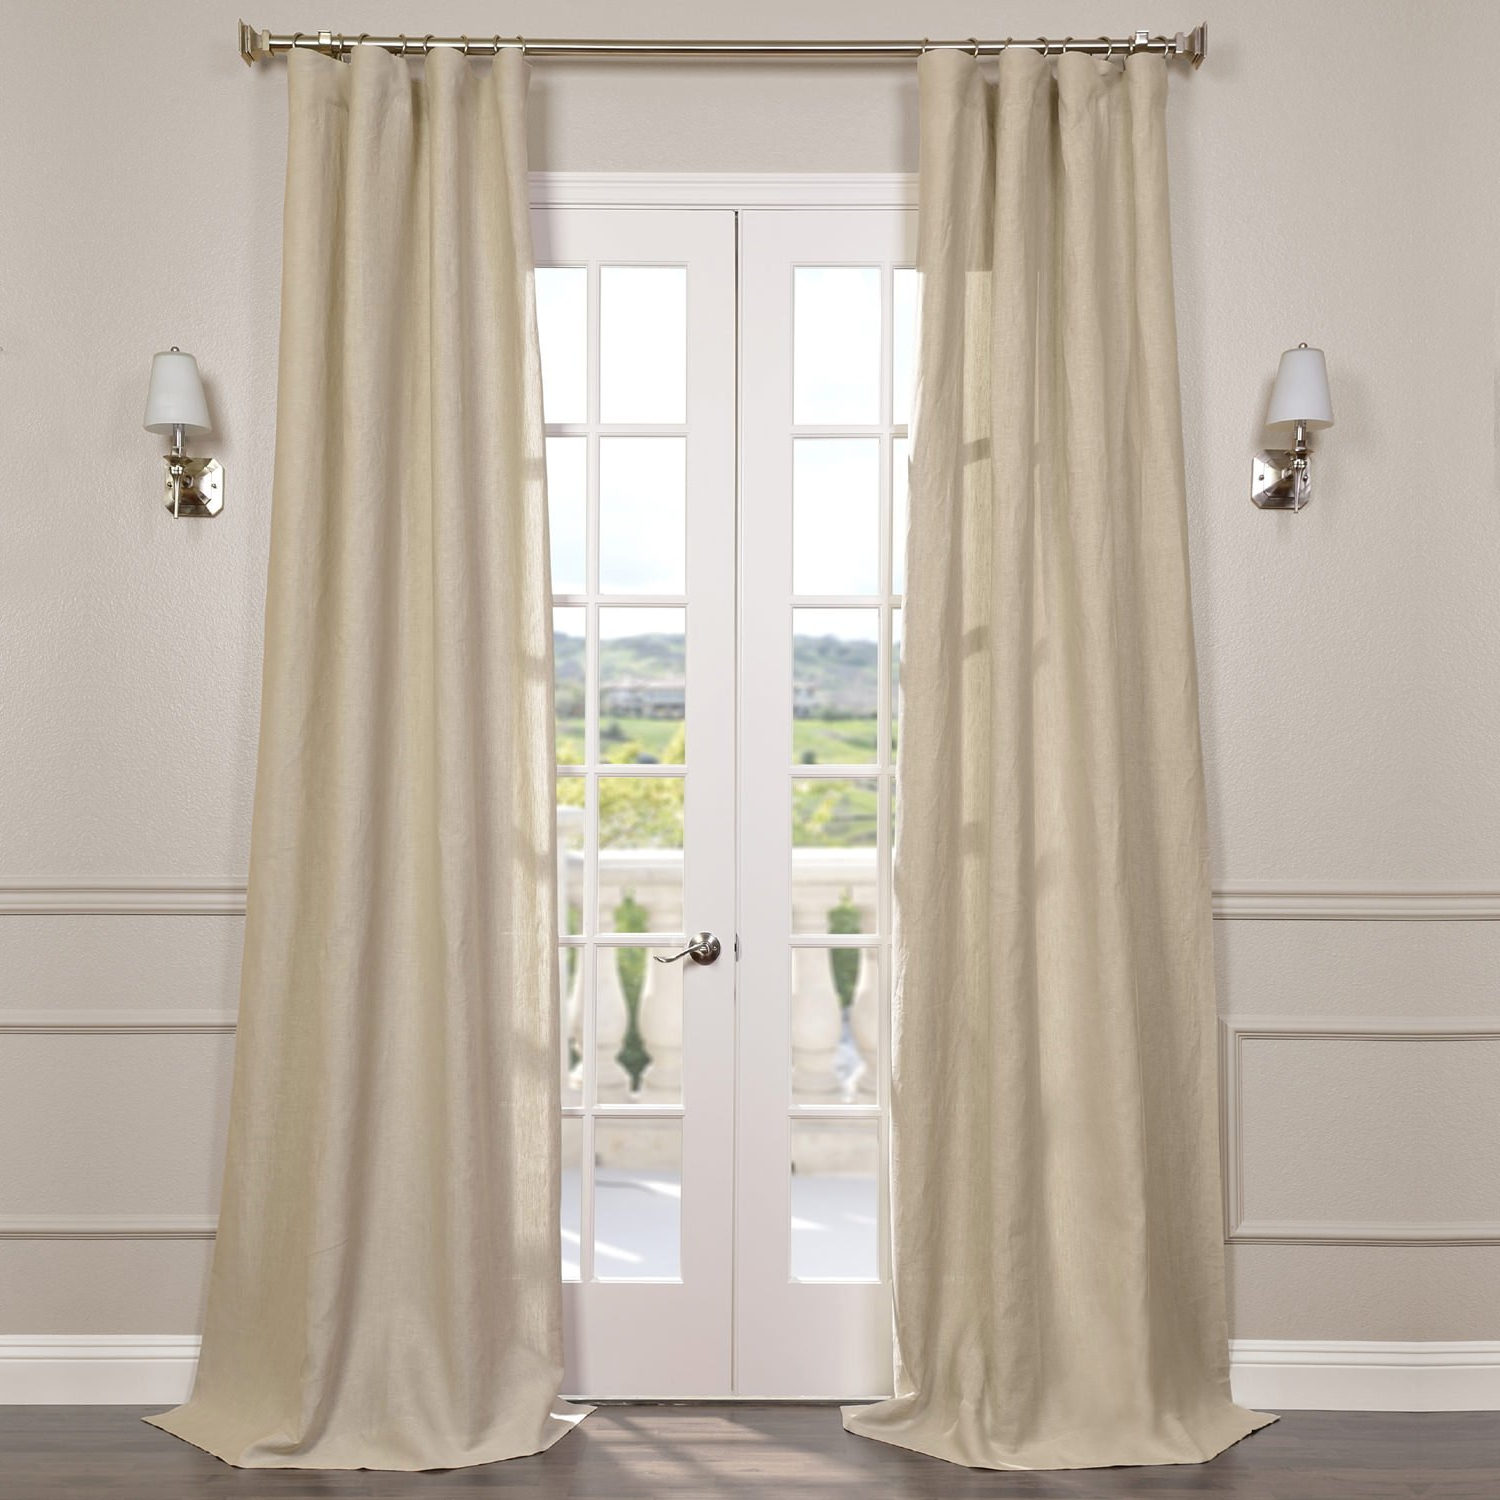 Well Liked Signature French Linen Curtain Panels Throughout Half Price Drapes Shlnch Gb1001032 108 Signature French Linen Sheer  Curtain, Antique Lace (View 19 of 20)